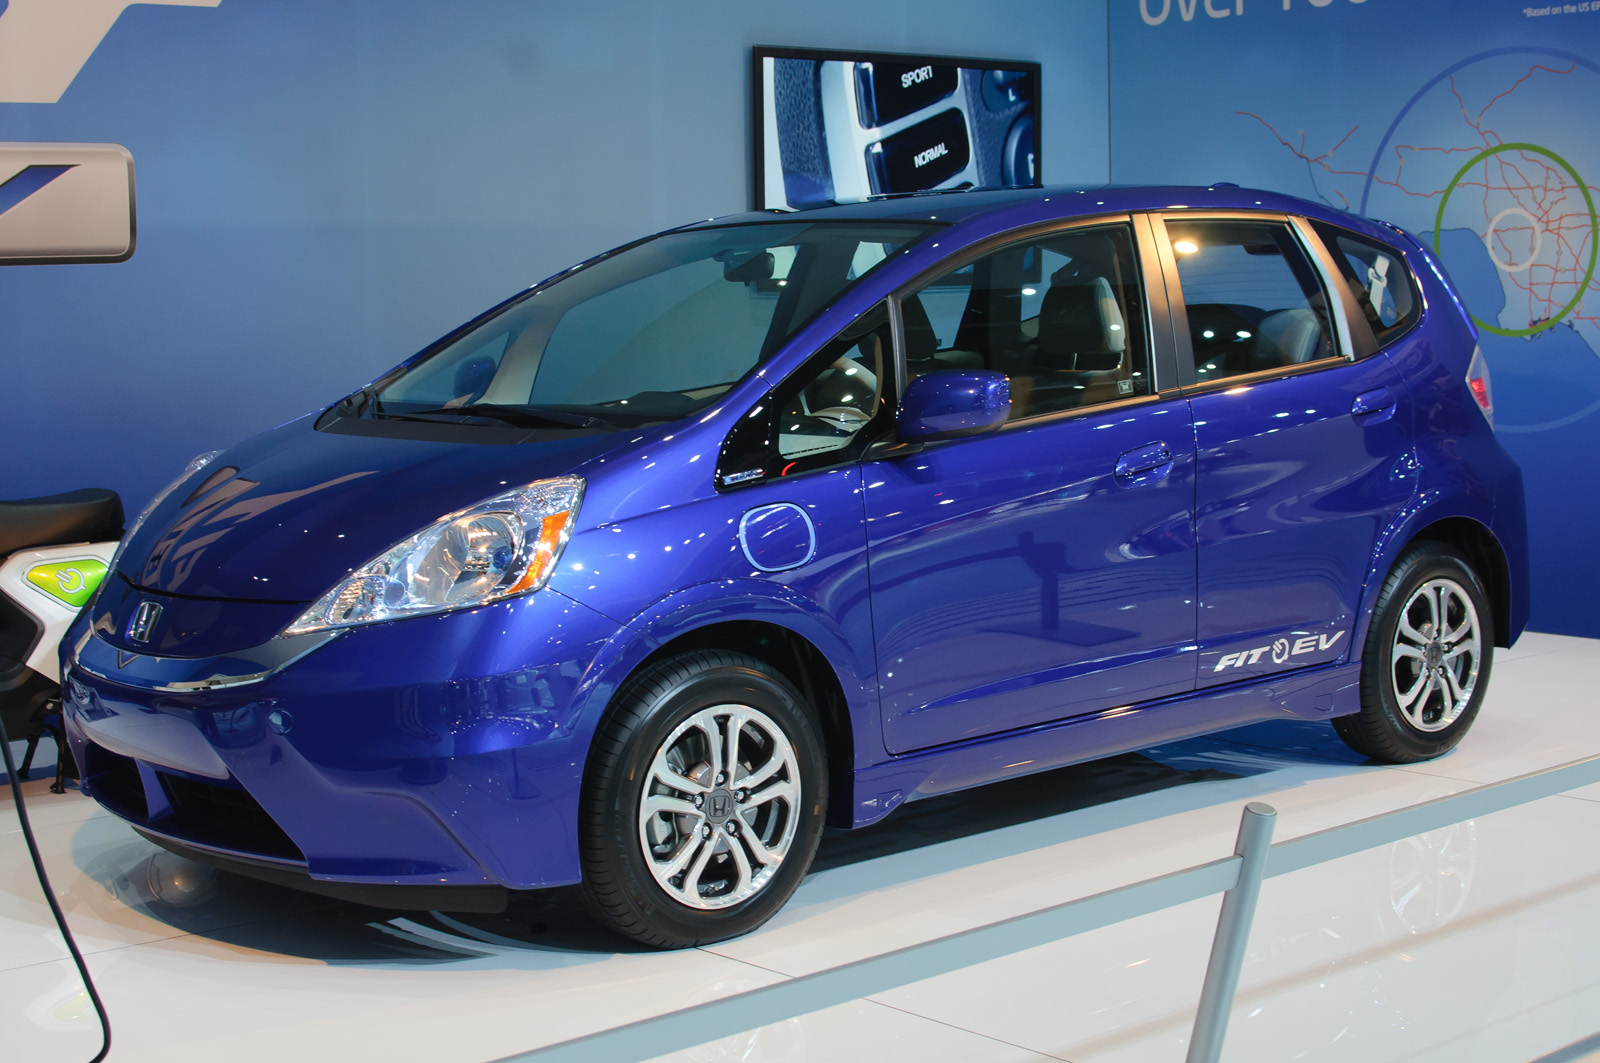 2017 Model Year Honda Fit Ev Electric Car Unveiled At The La Auto Show